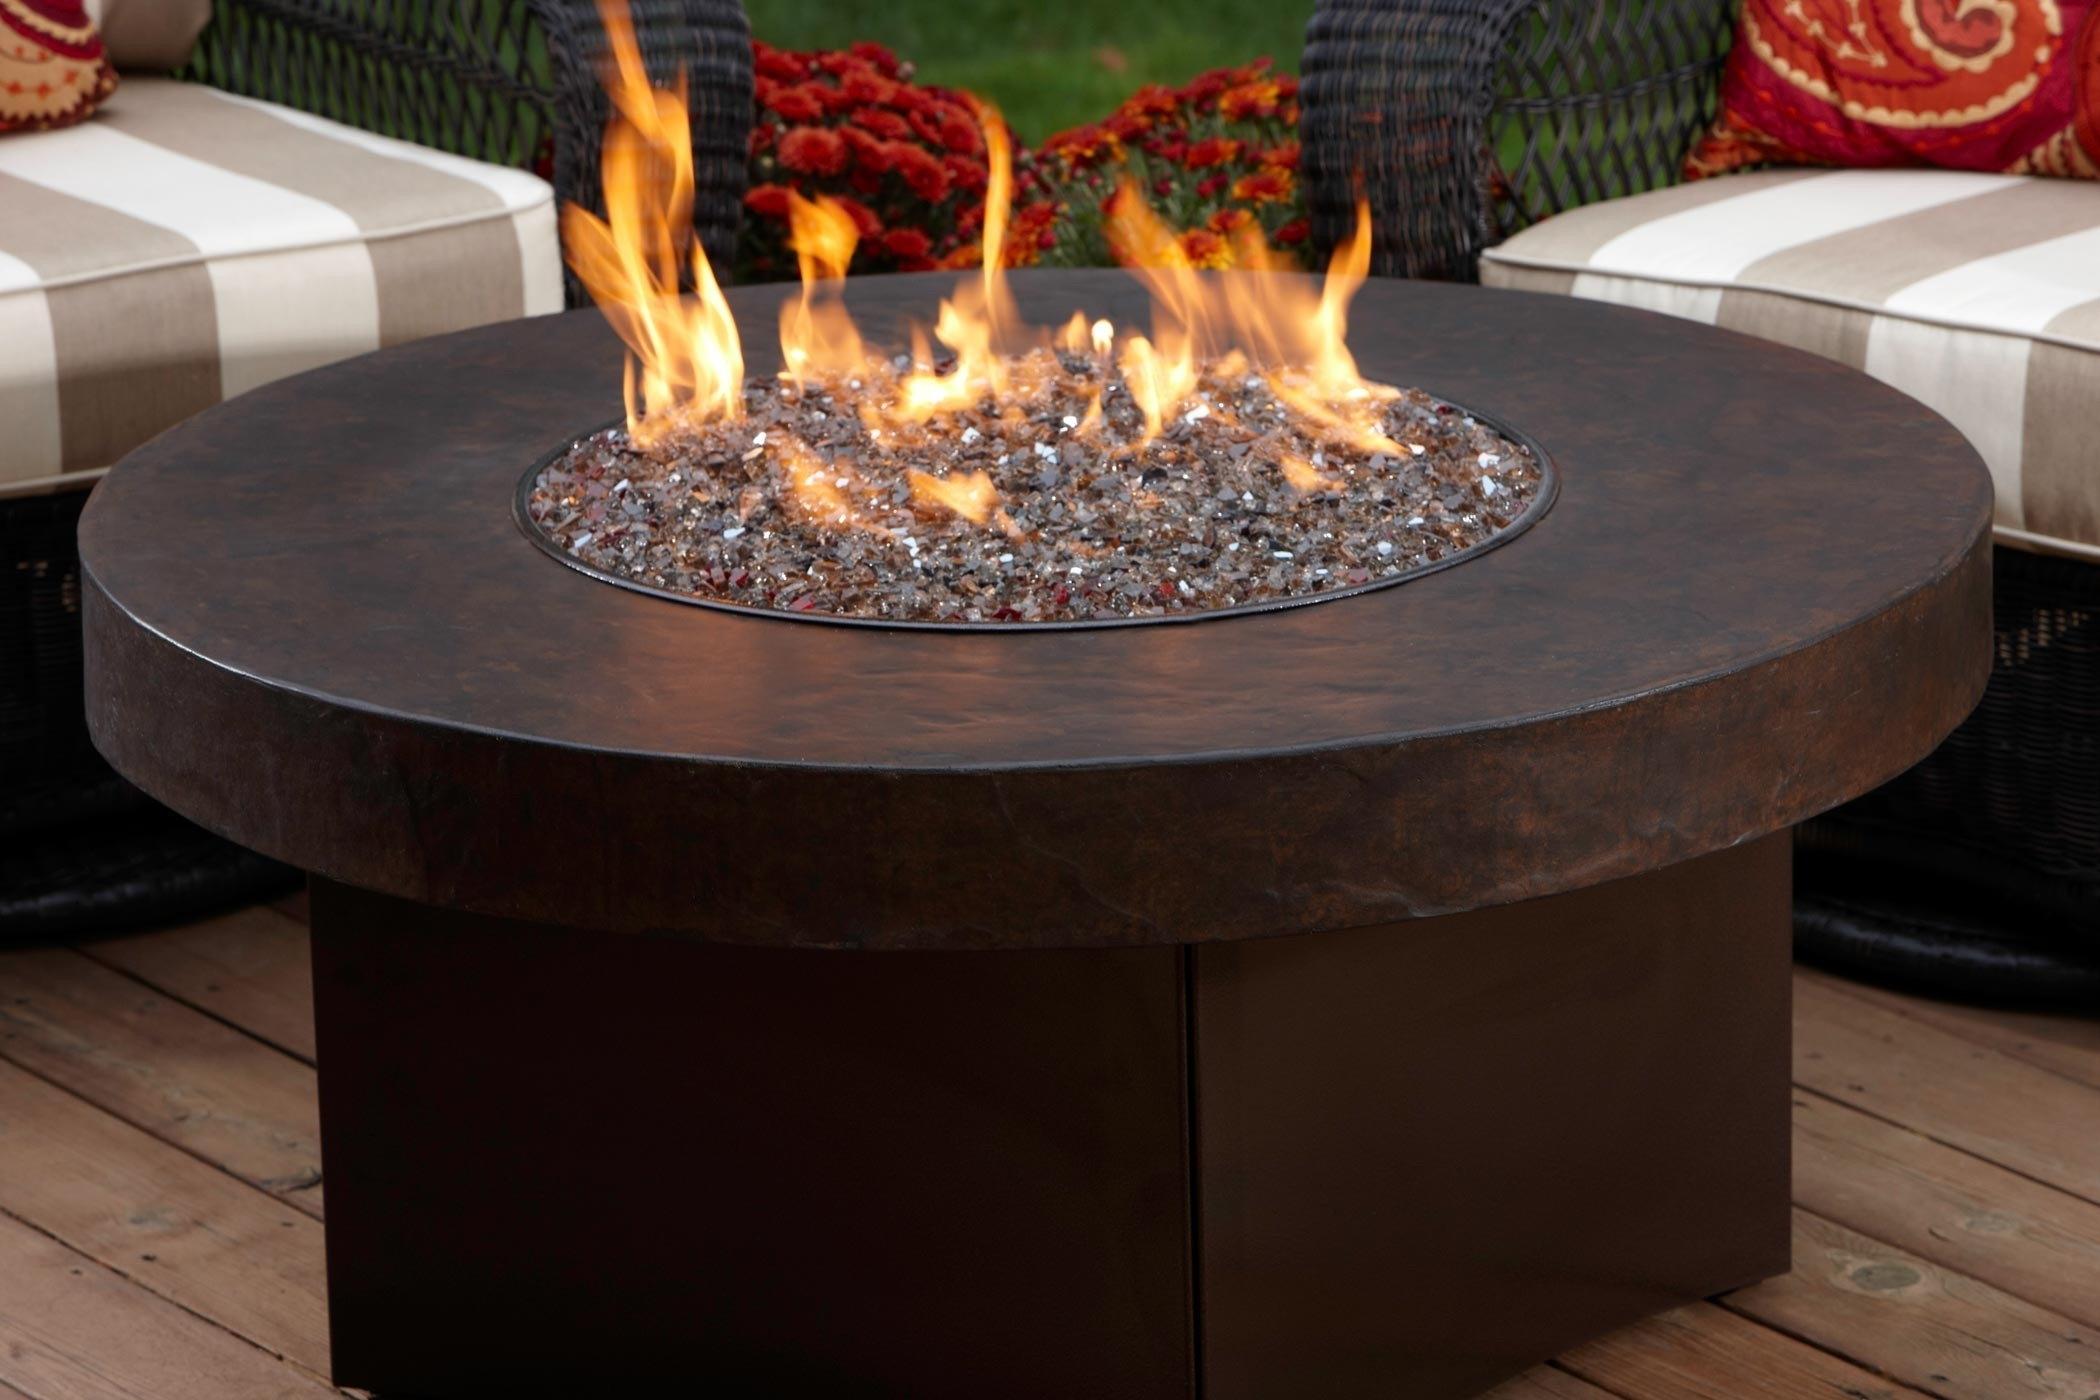 Image of: Fire Pit Best Outdoor Fire Pits Propane Design Large Round Solid In Outdoor Fireplace Burner Outdoor Fireplace Burner Clan